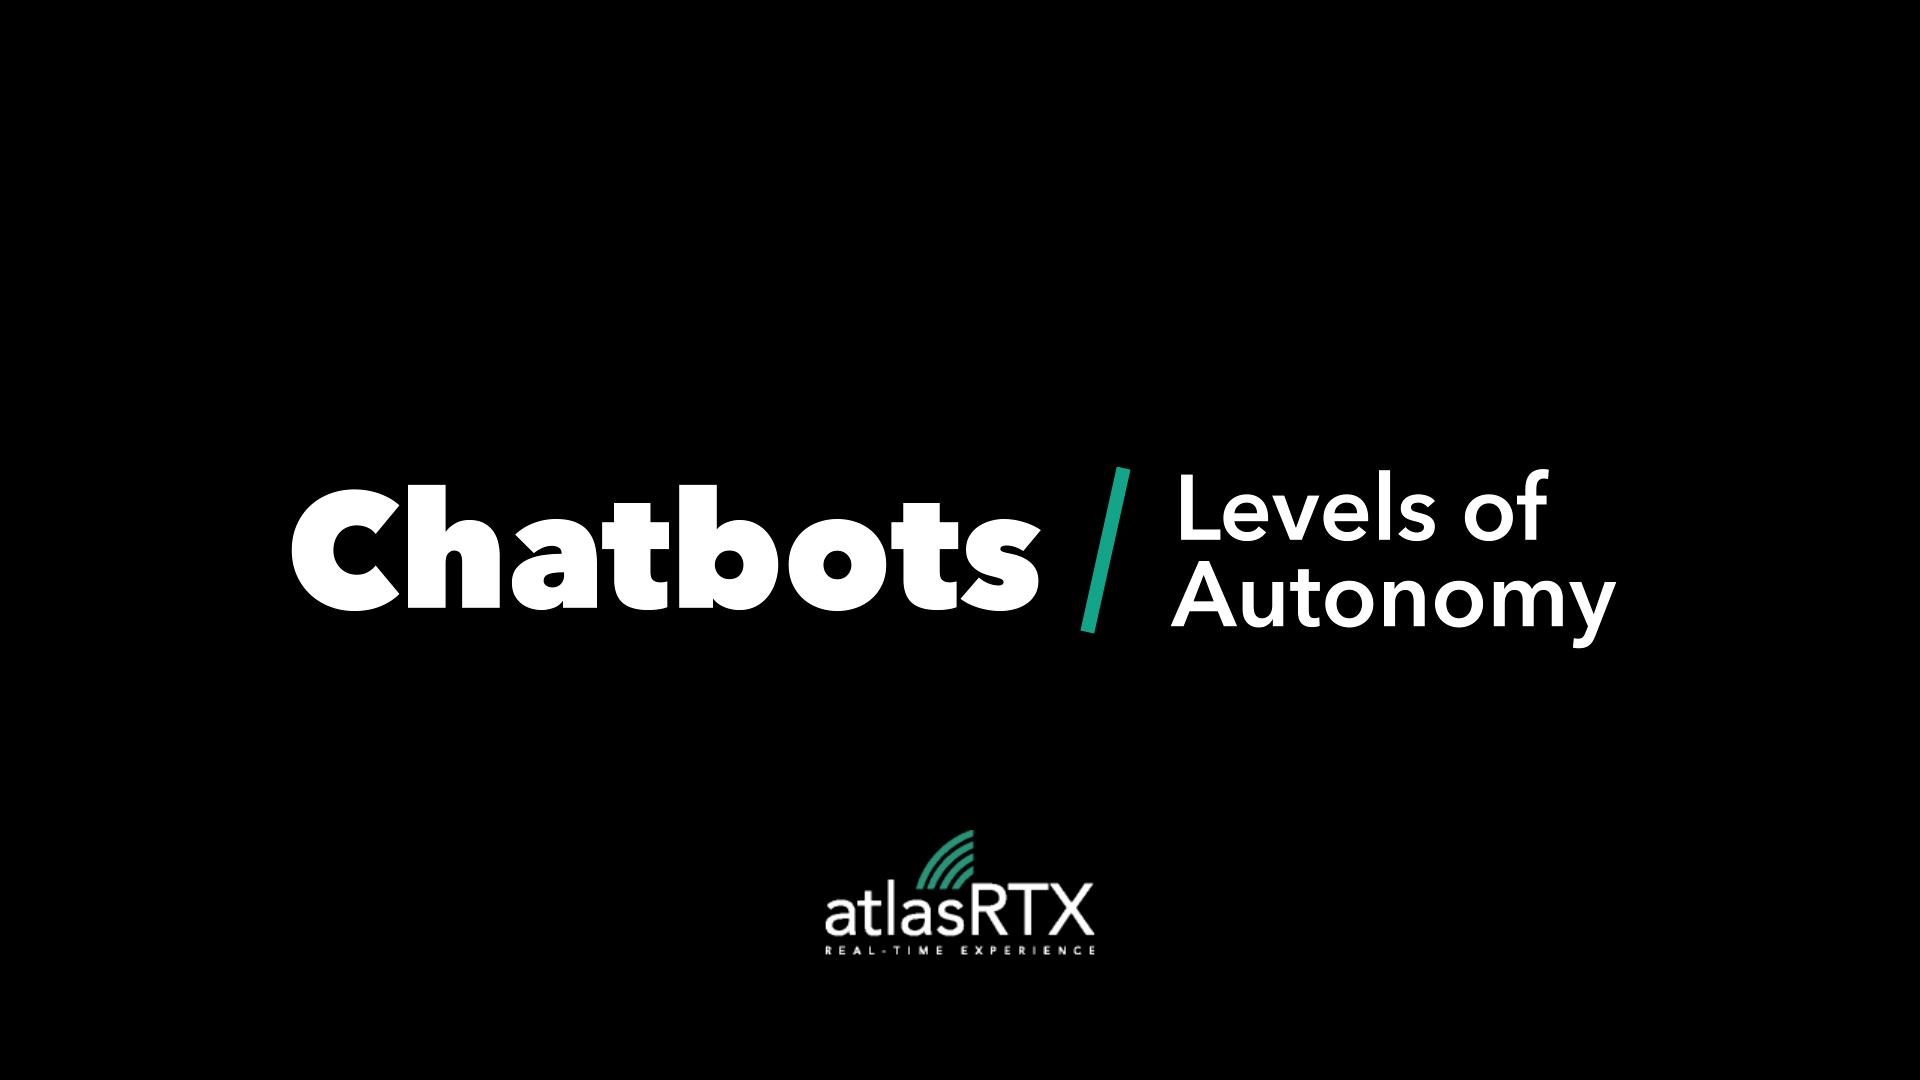 Levels of Autonomy in Chatbots